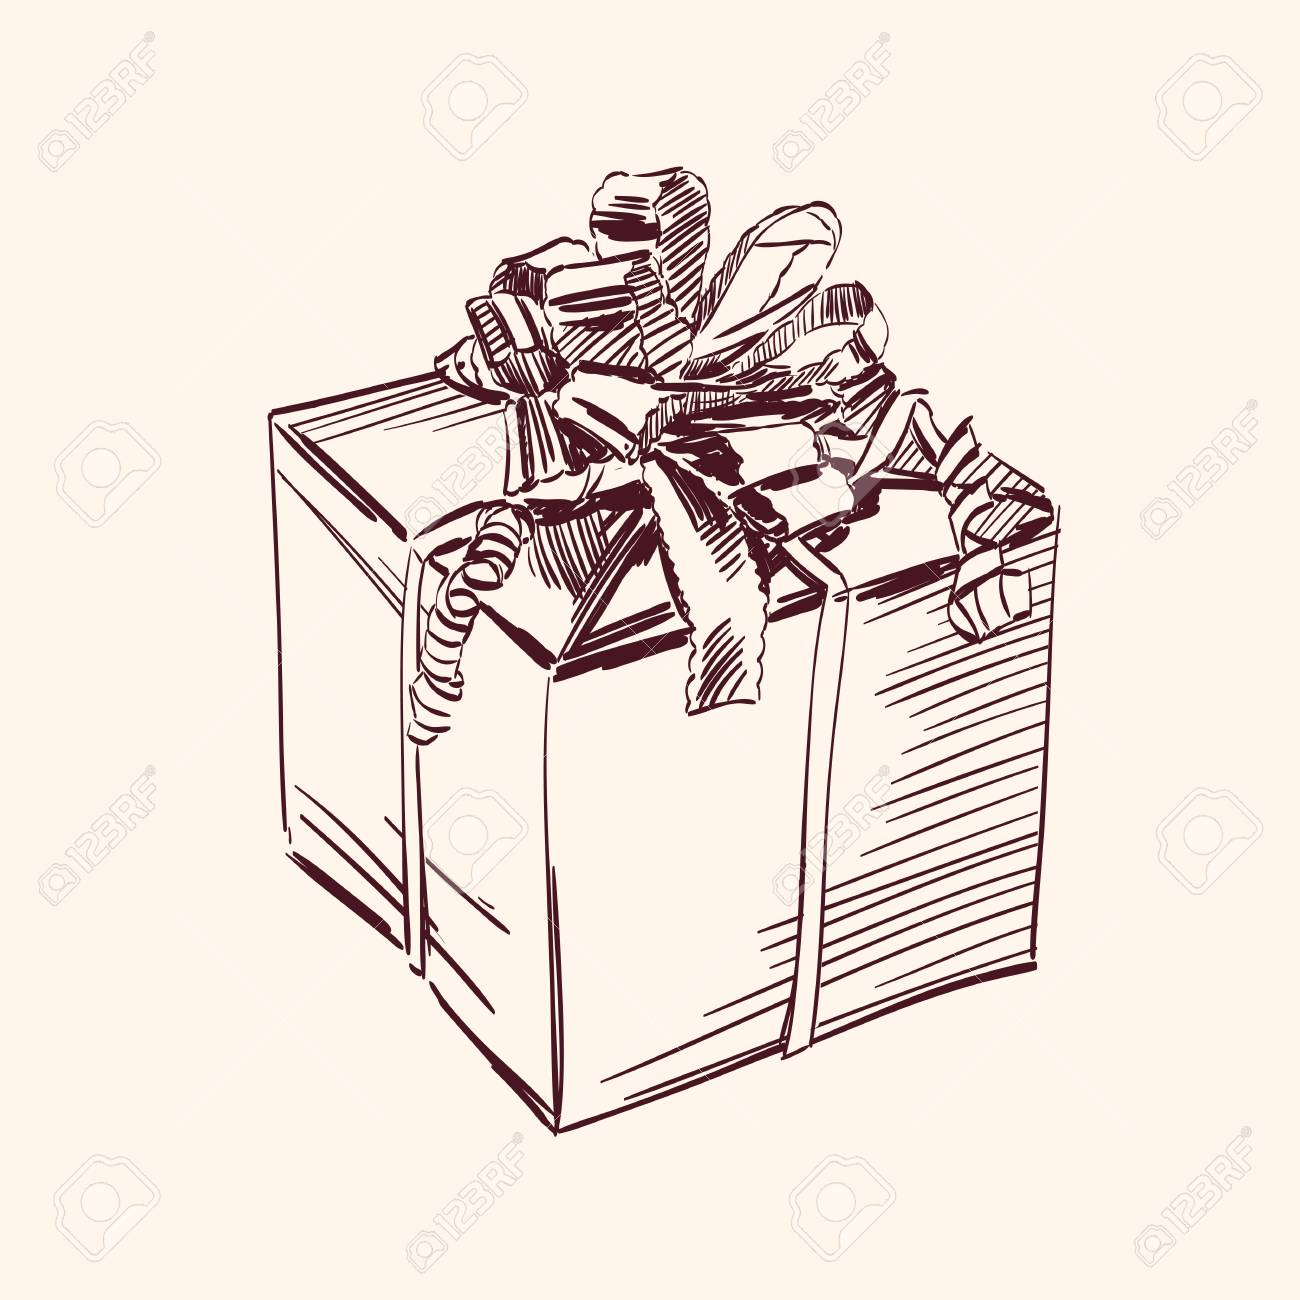 Vintage gift box illustration Stock Vector - 14259560